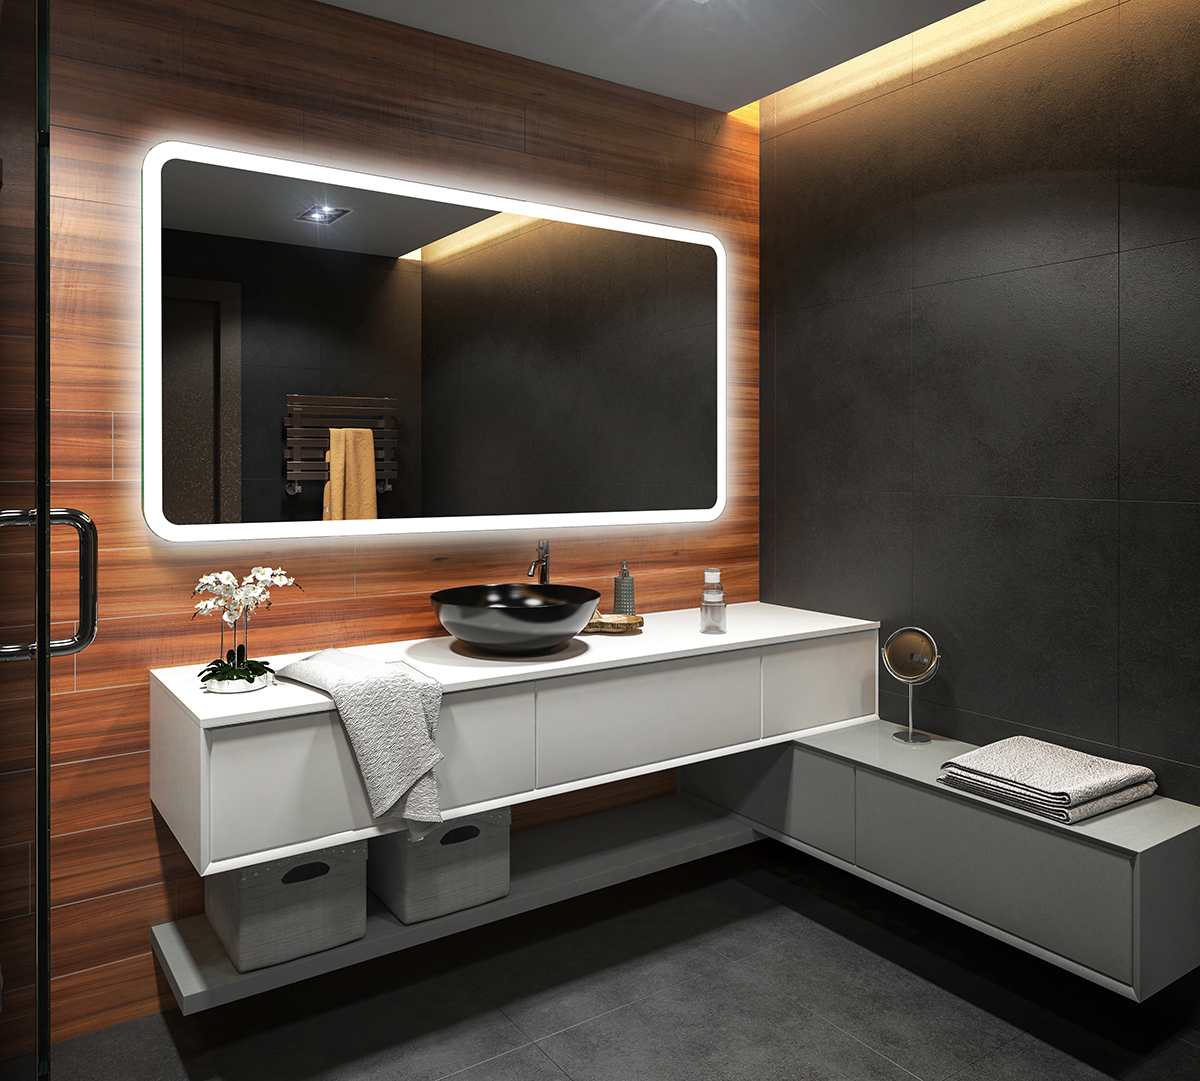 design led badezimmerspiegel eco badspiegel lichtspiegel. Black Bedroom Furniture Sets. Home Design Ideas